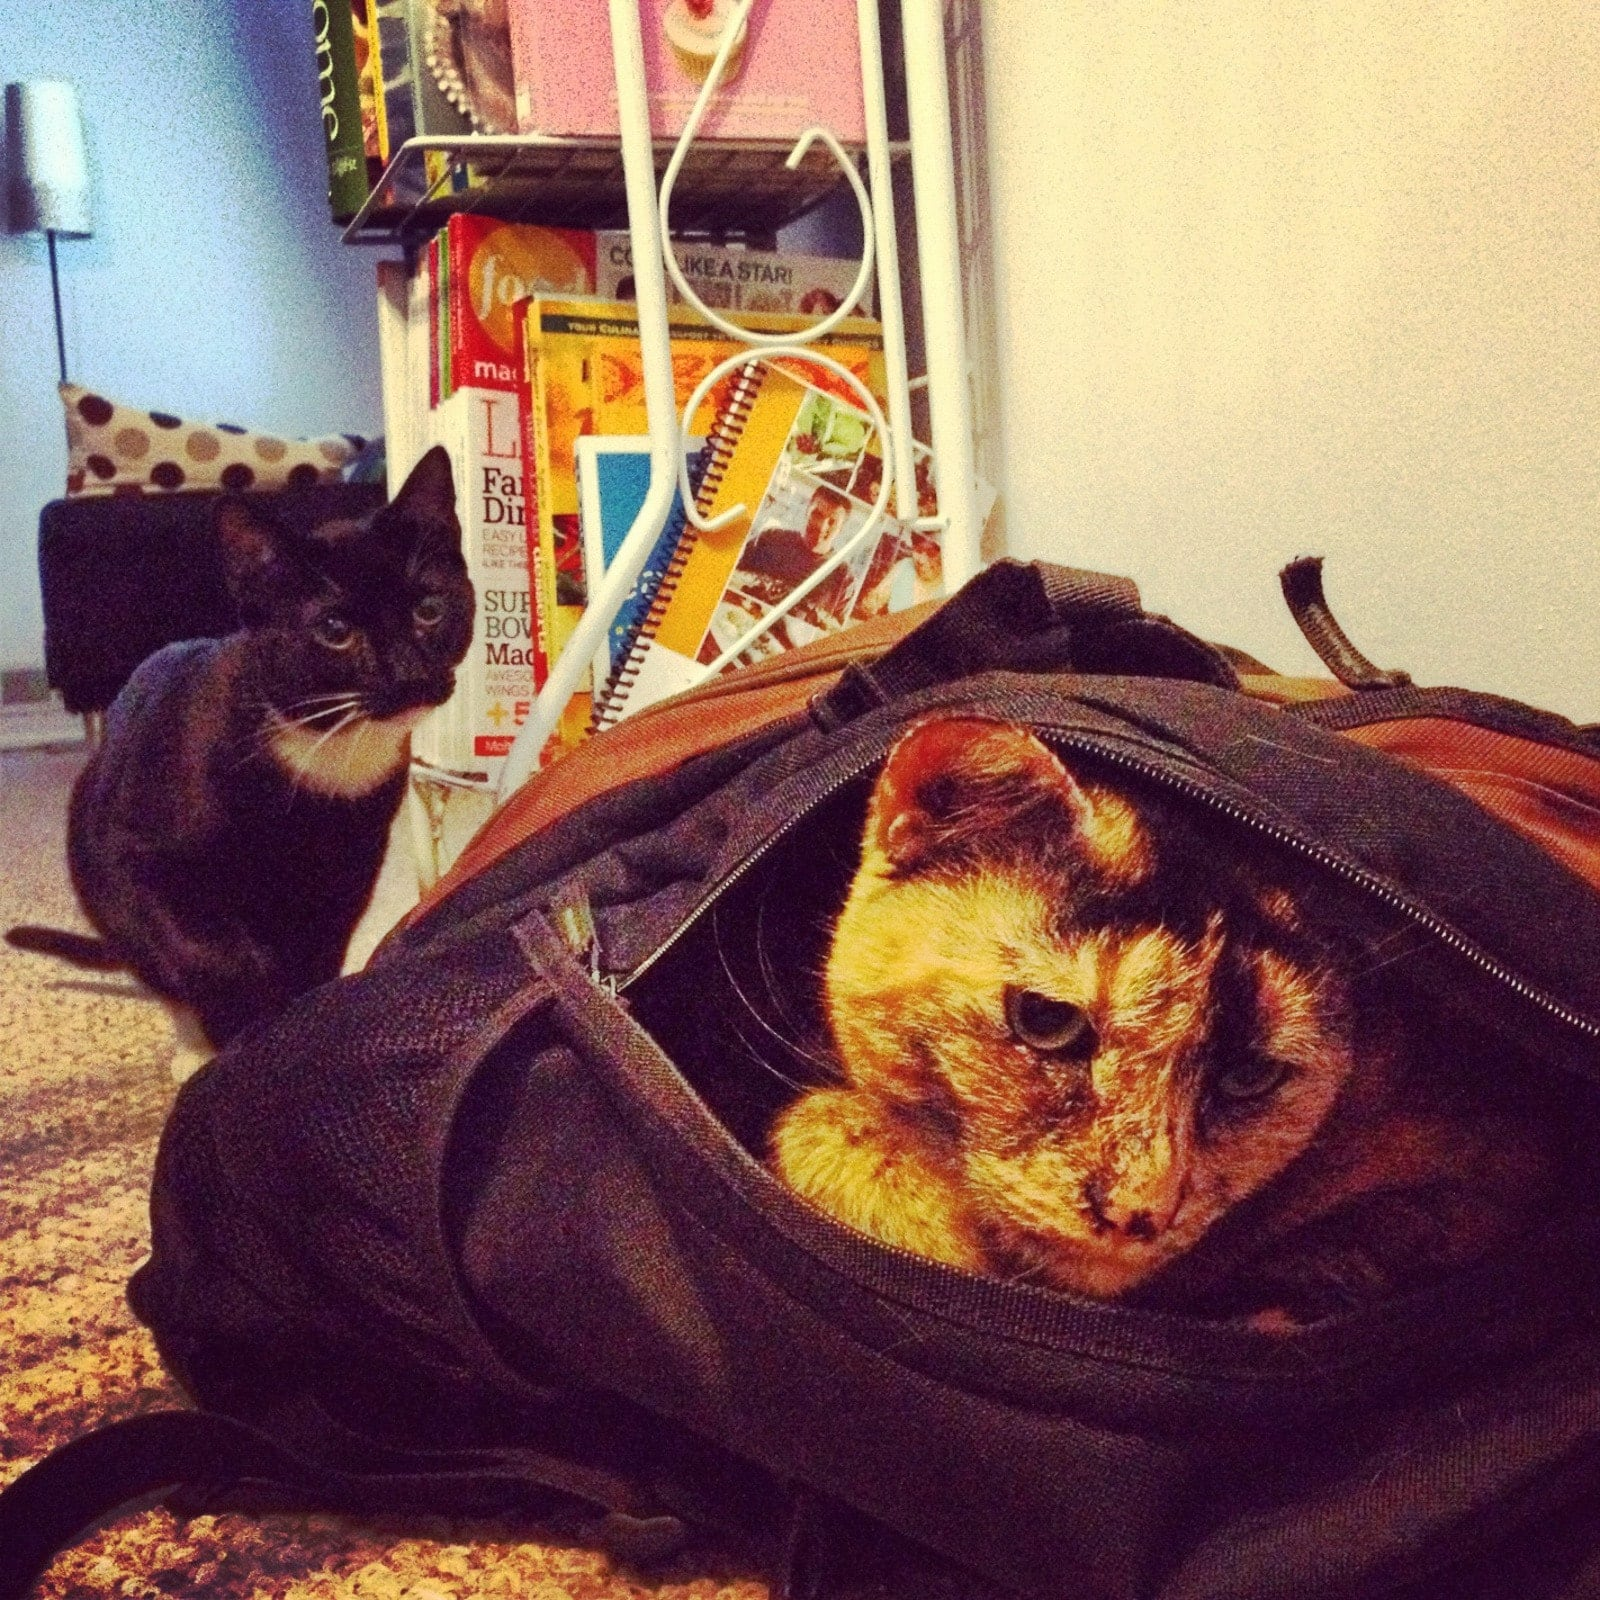 Leela in a bag with Fry watching